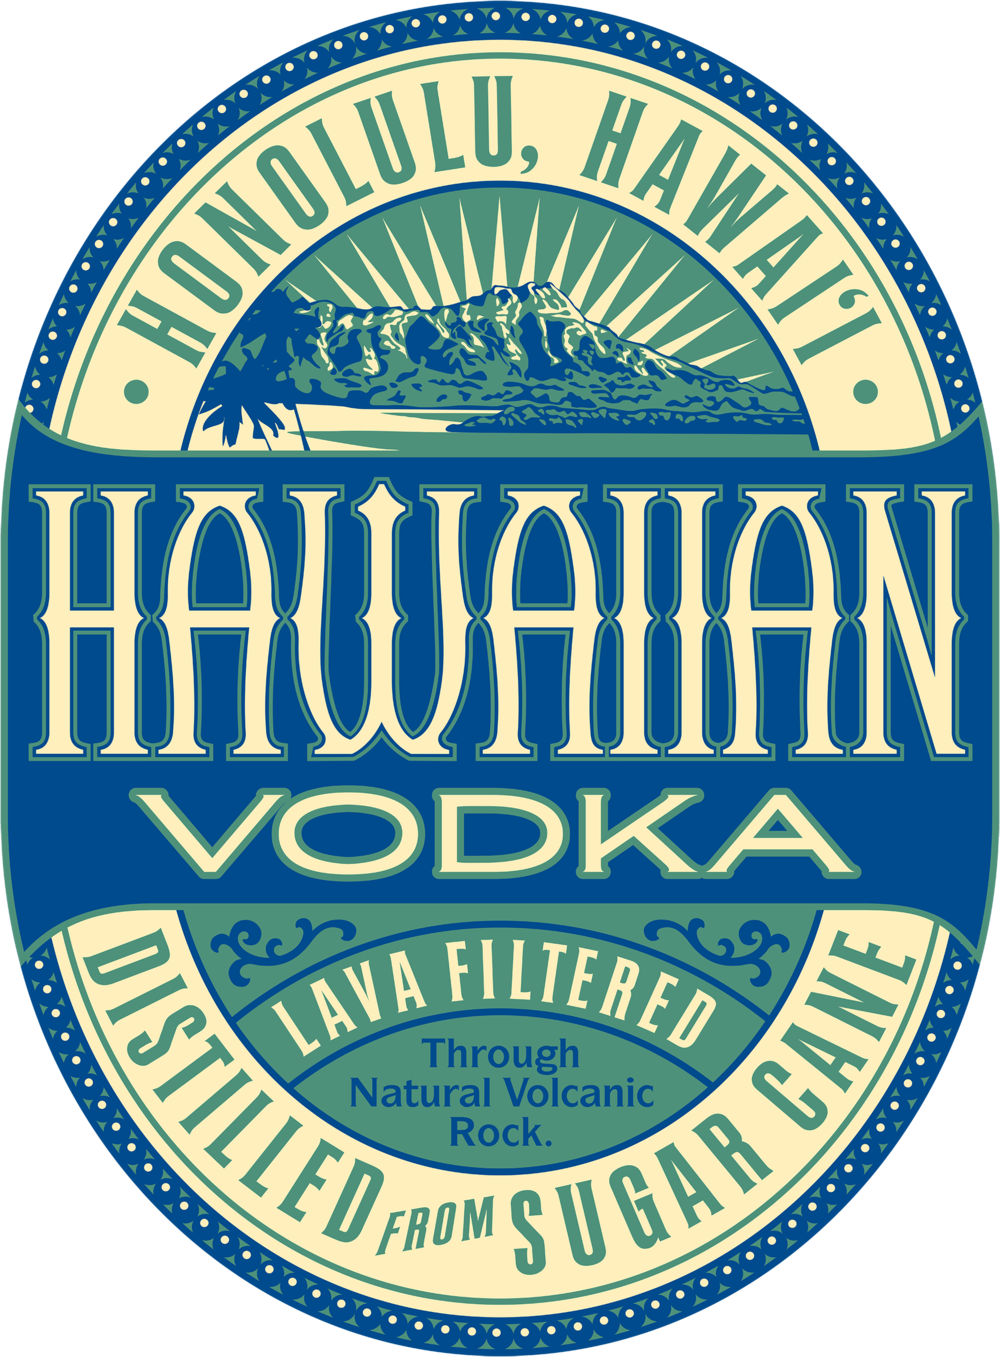 Hawaiian Vodka logo.png